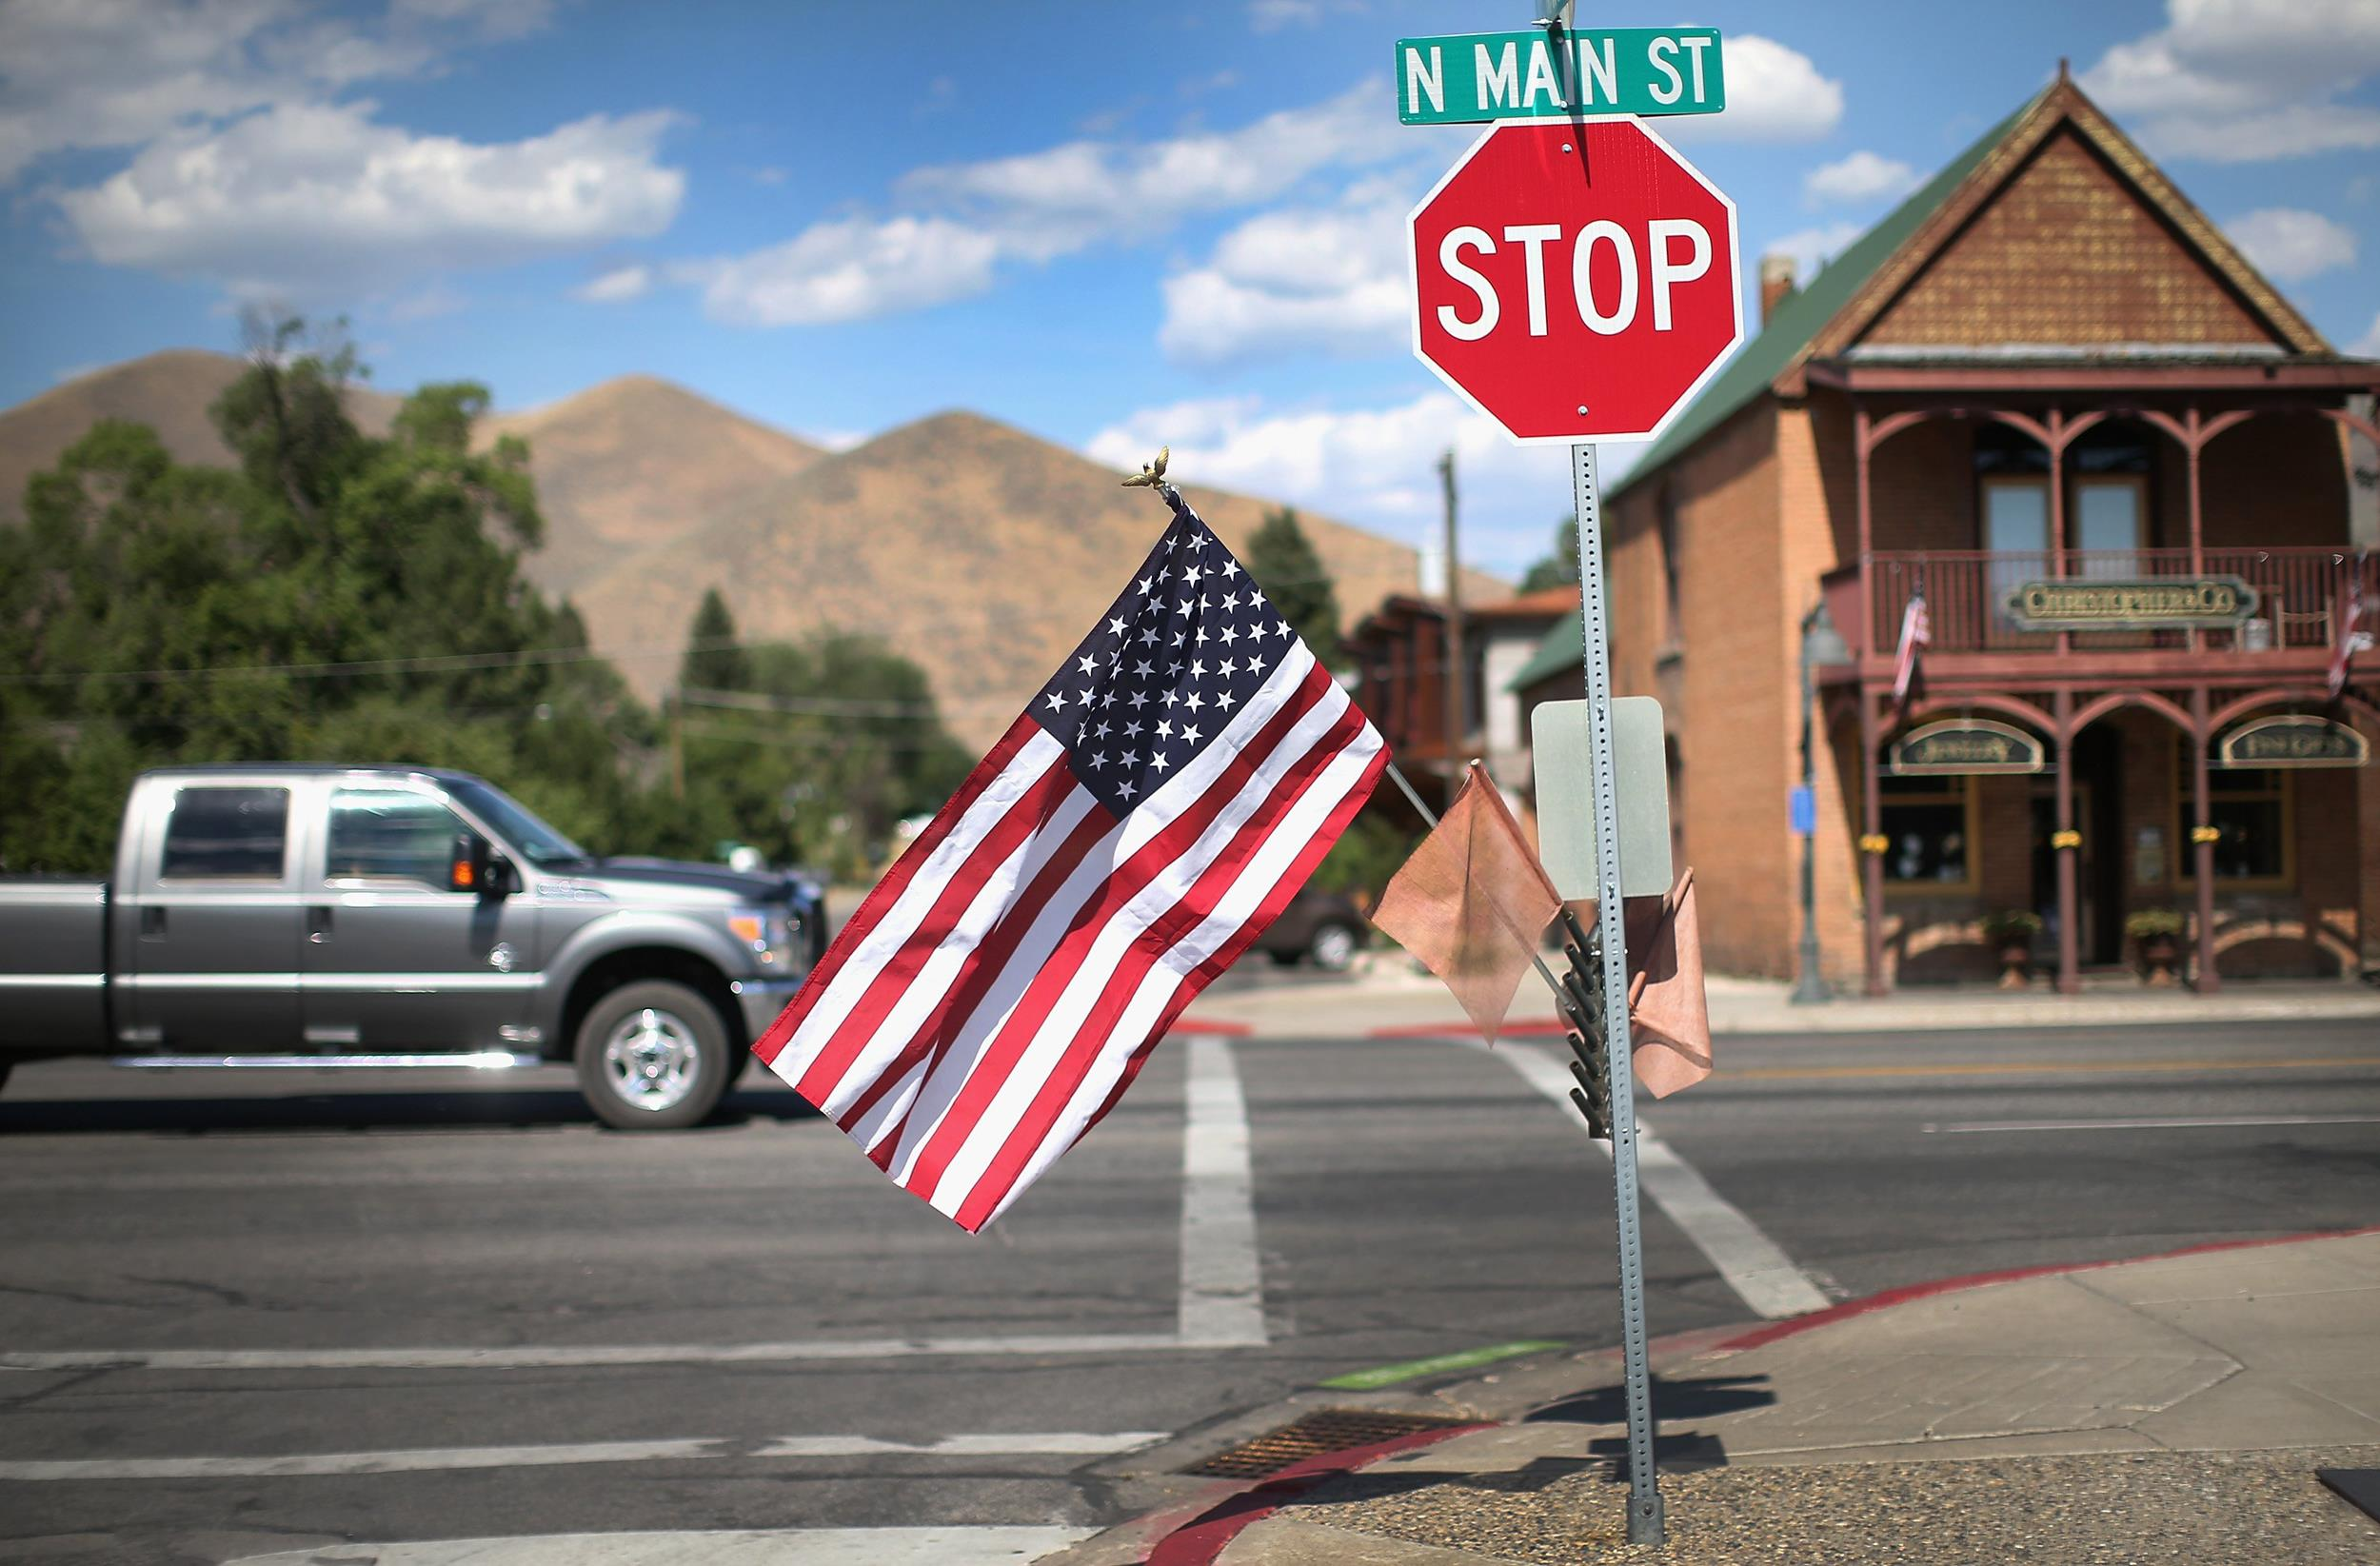 Image:An American flags flies along Main Street in Hailey, Idaho